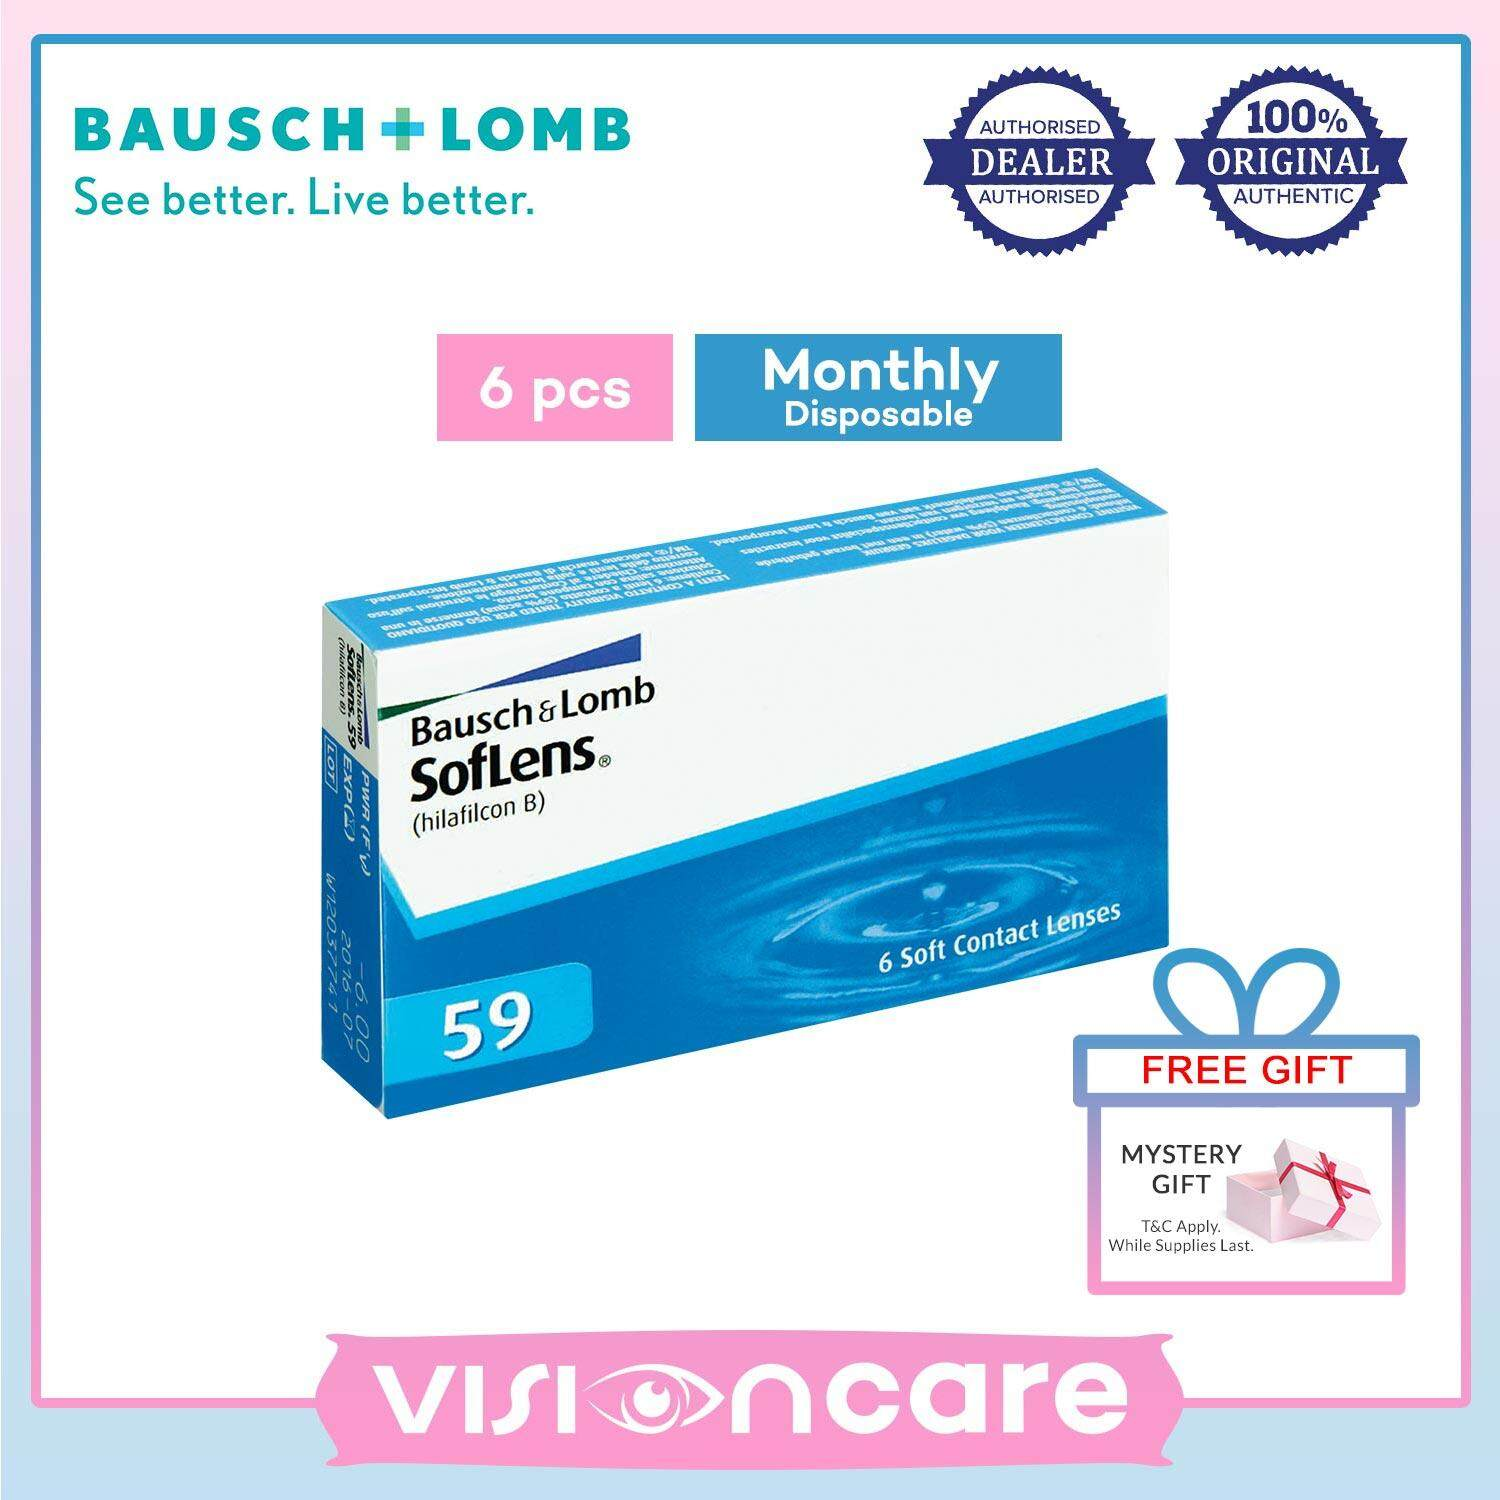 Bausch & Lomb SofLens 59 Monthly Contact Lenses